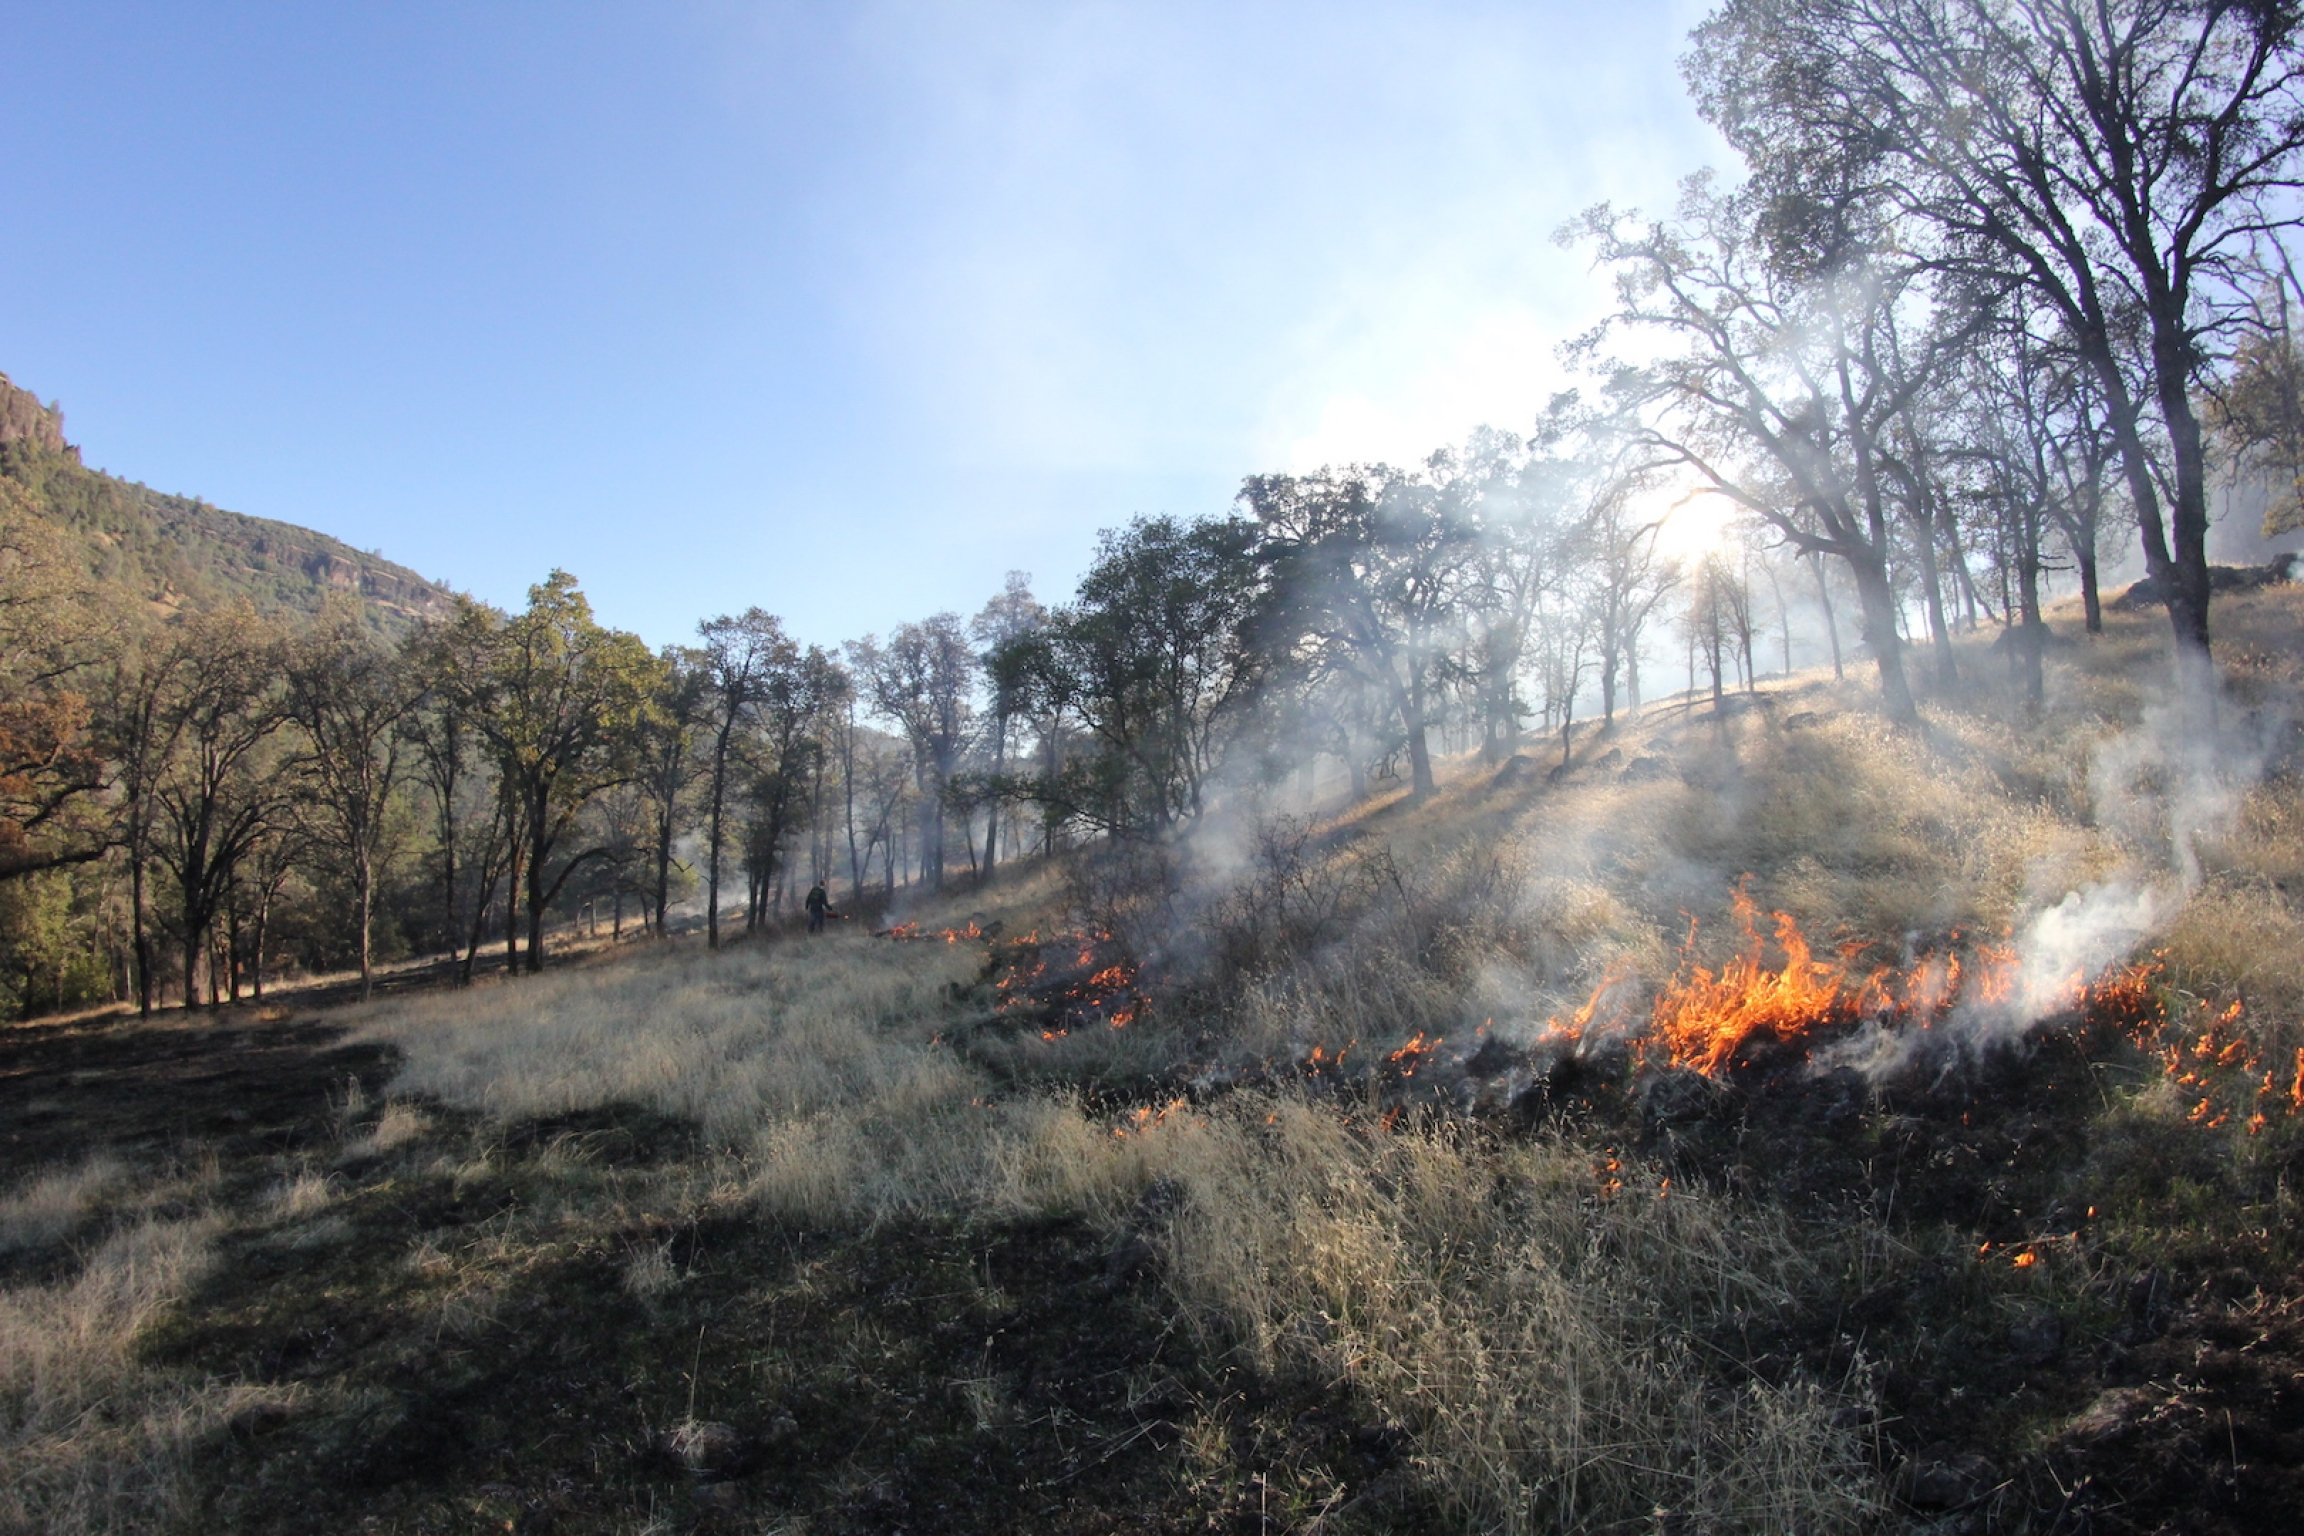 A fire burns with blue and gray patches in a field